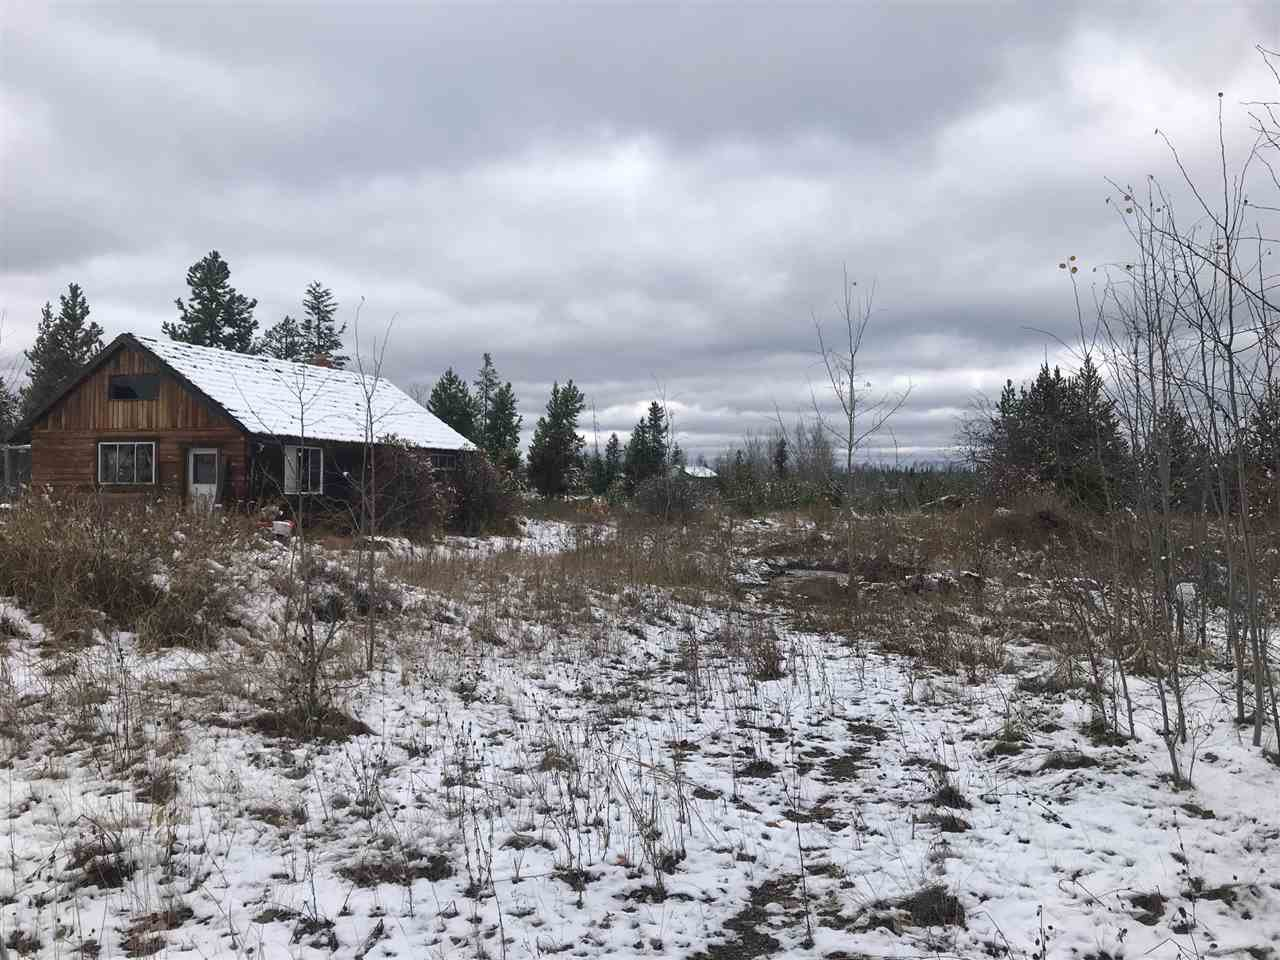 Main Photo: 2445 PINE Road: 70 Mile House Land for sale (100 Mile House (Zone 10))  : MLS®# R2511557